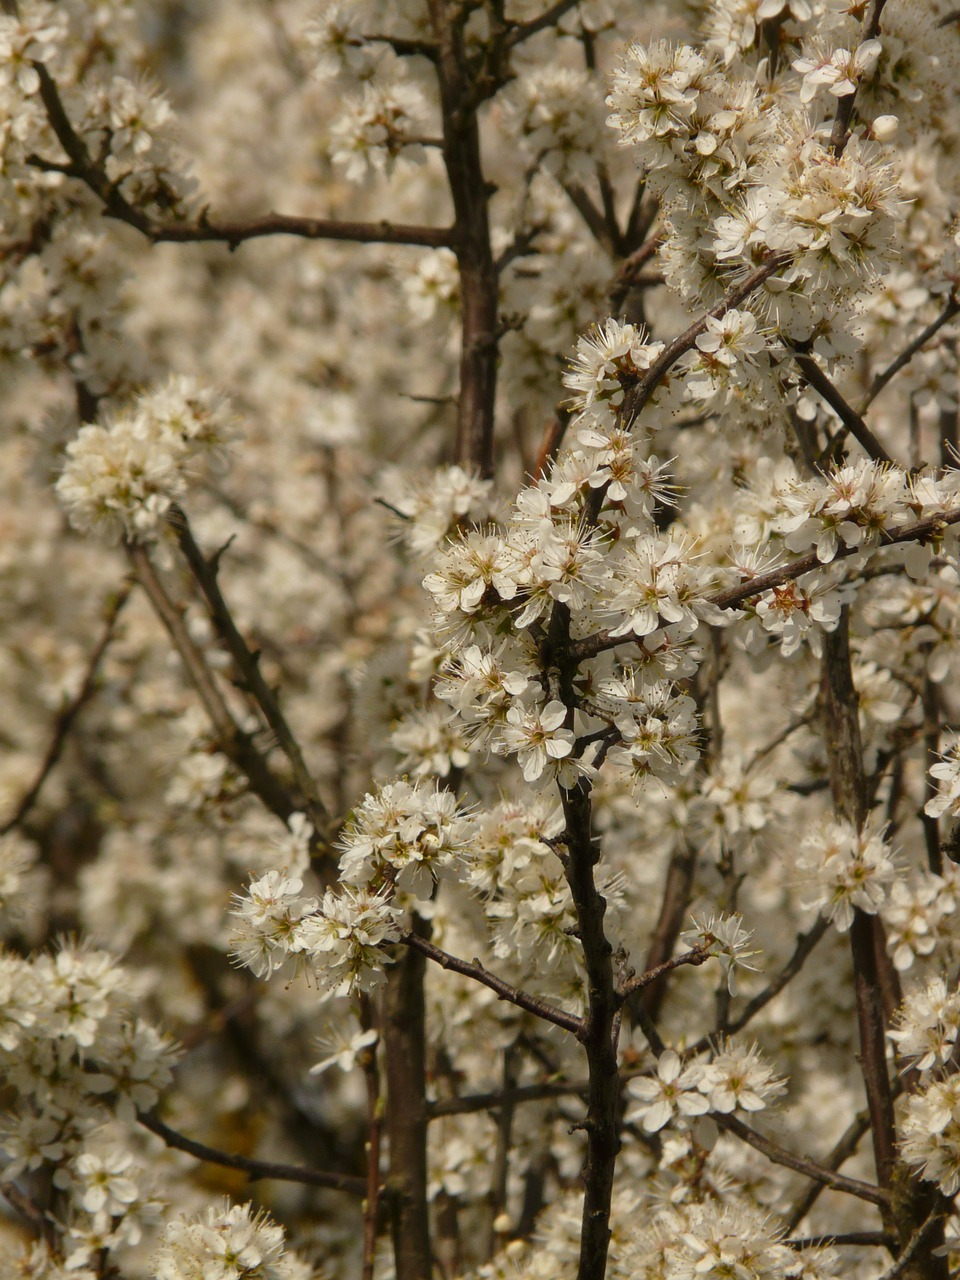 blackthorn,schlehendorn,schlehe,heckendorn,flowers,white,bloom,plant,bush,free pictures, free photos, free images, royalty free, free illustrations, public domain